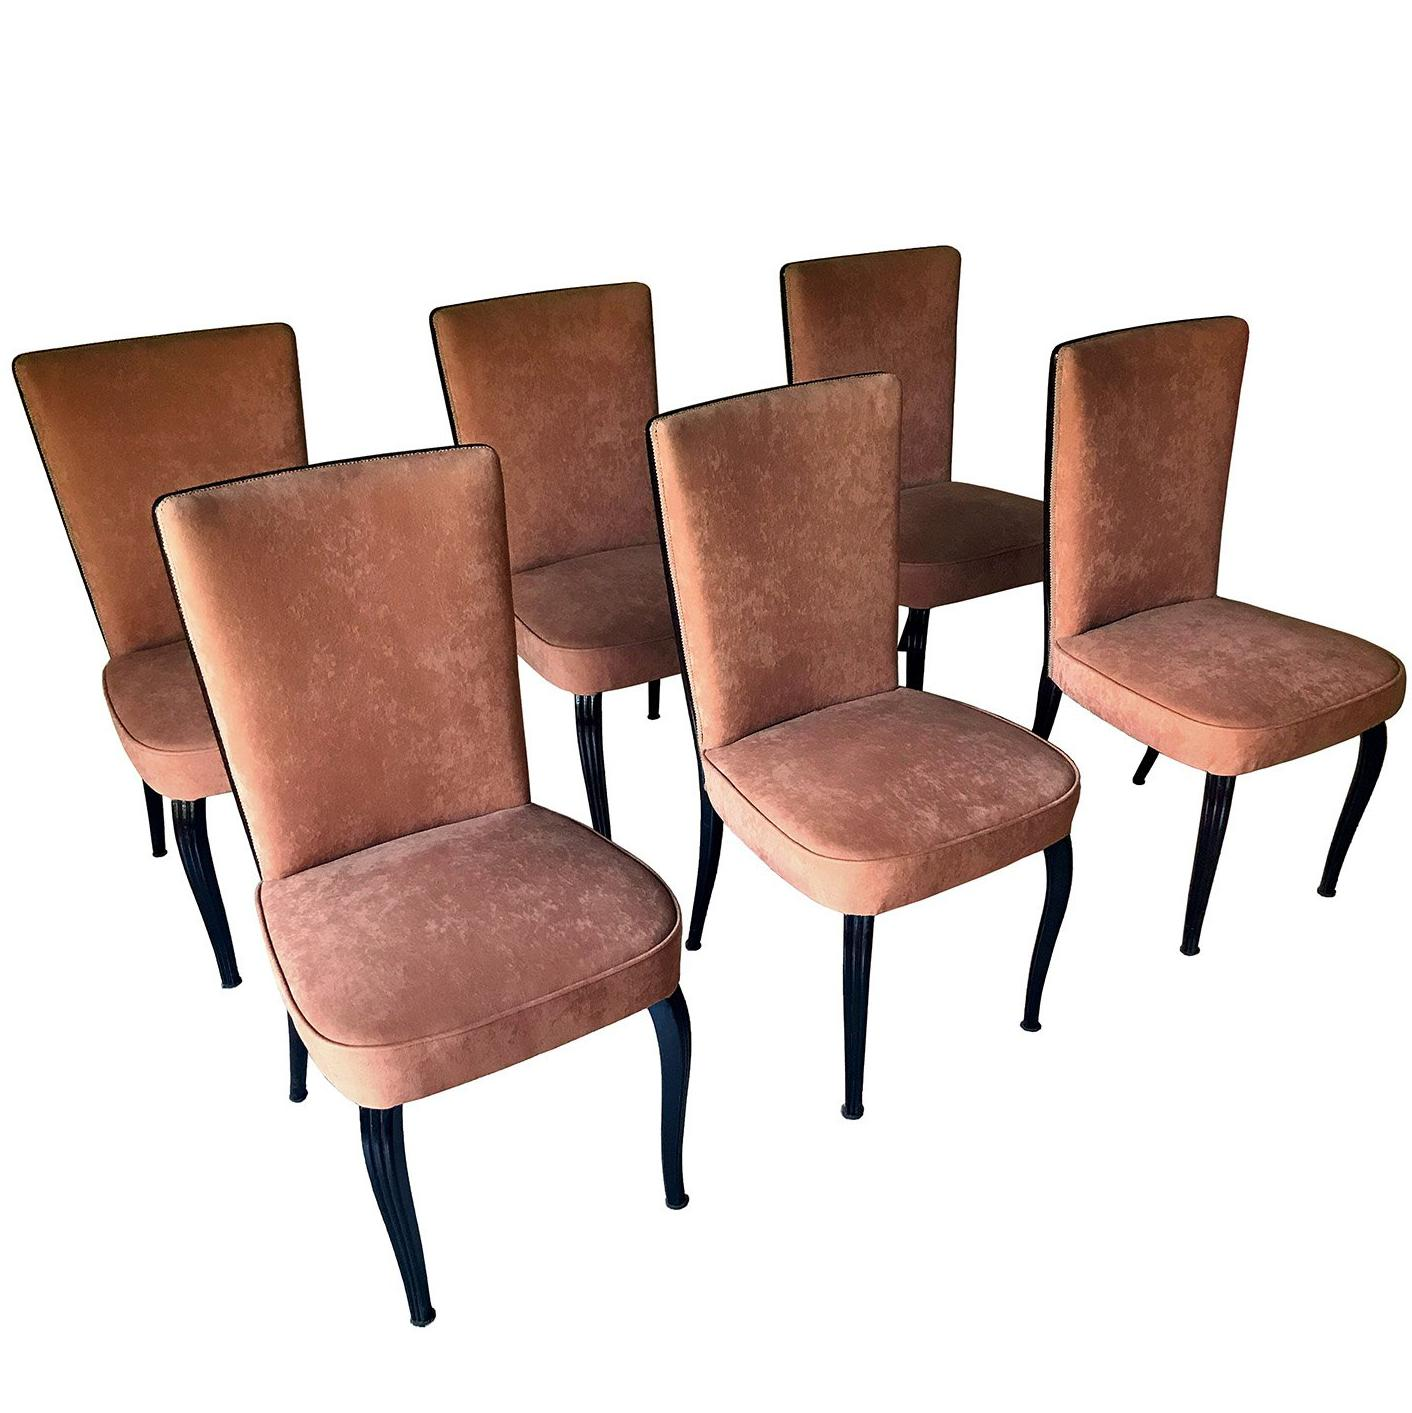 Italian Mid-Century Velvet Dining Chairs by Vittorio Dassi, Set of Six, 1950s